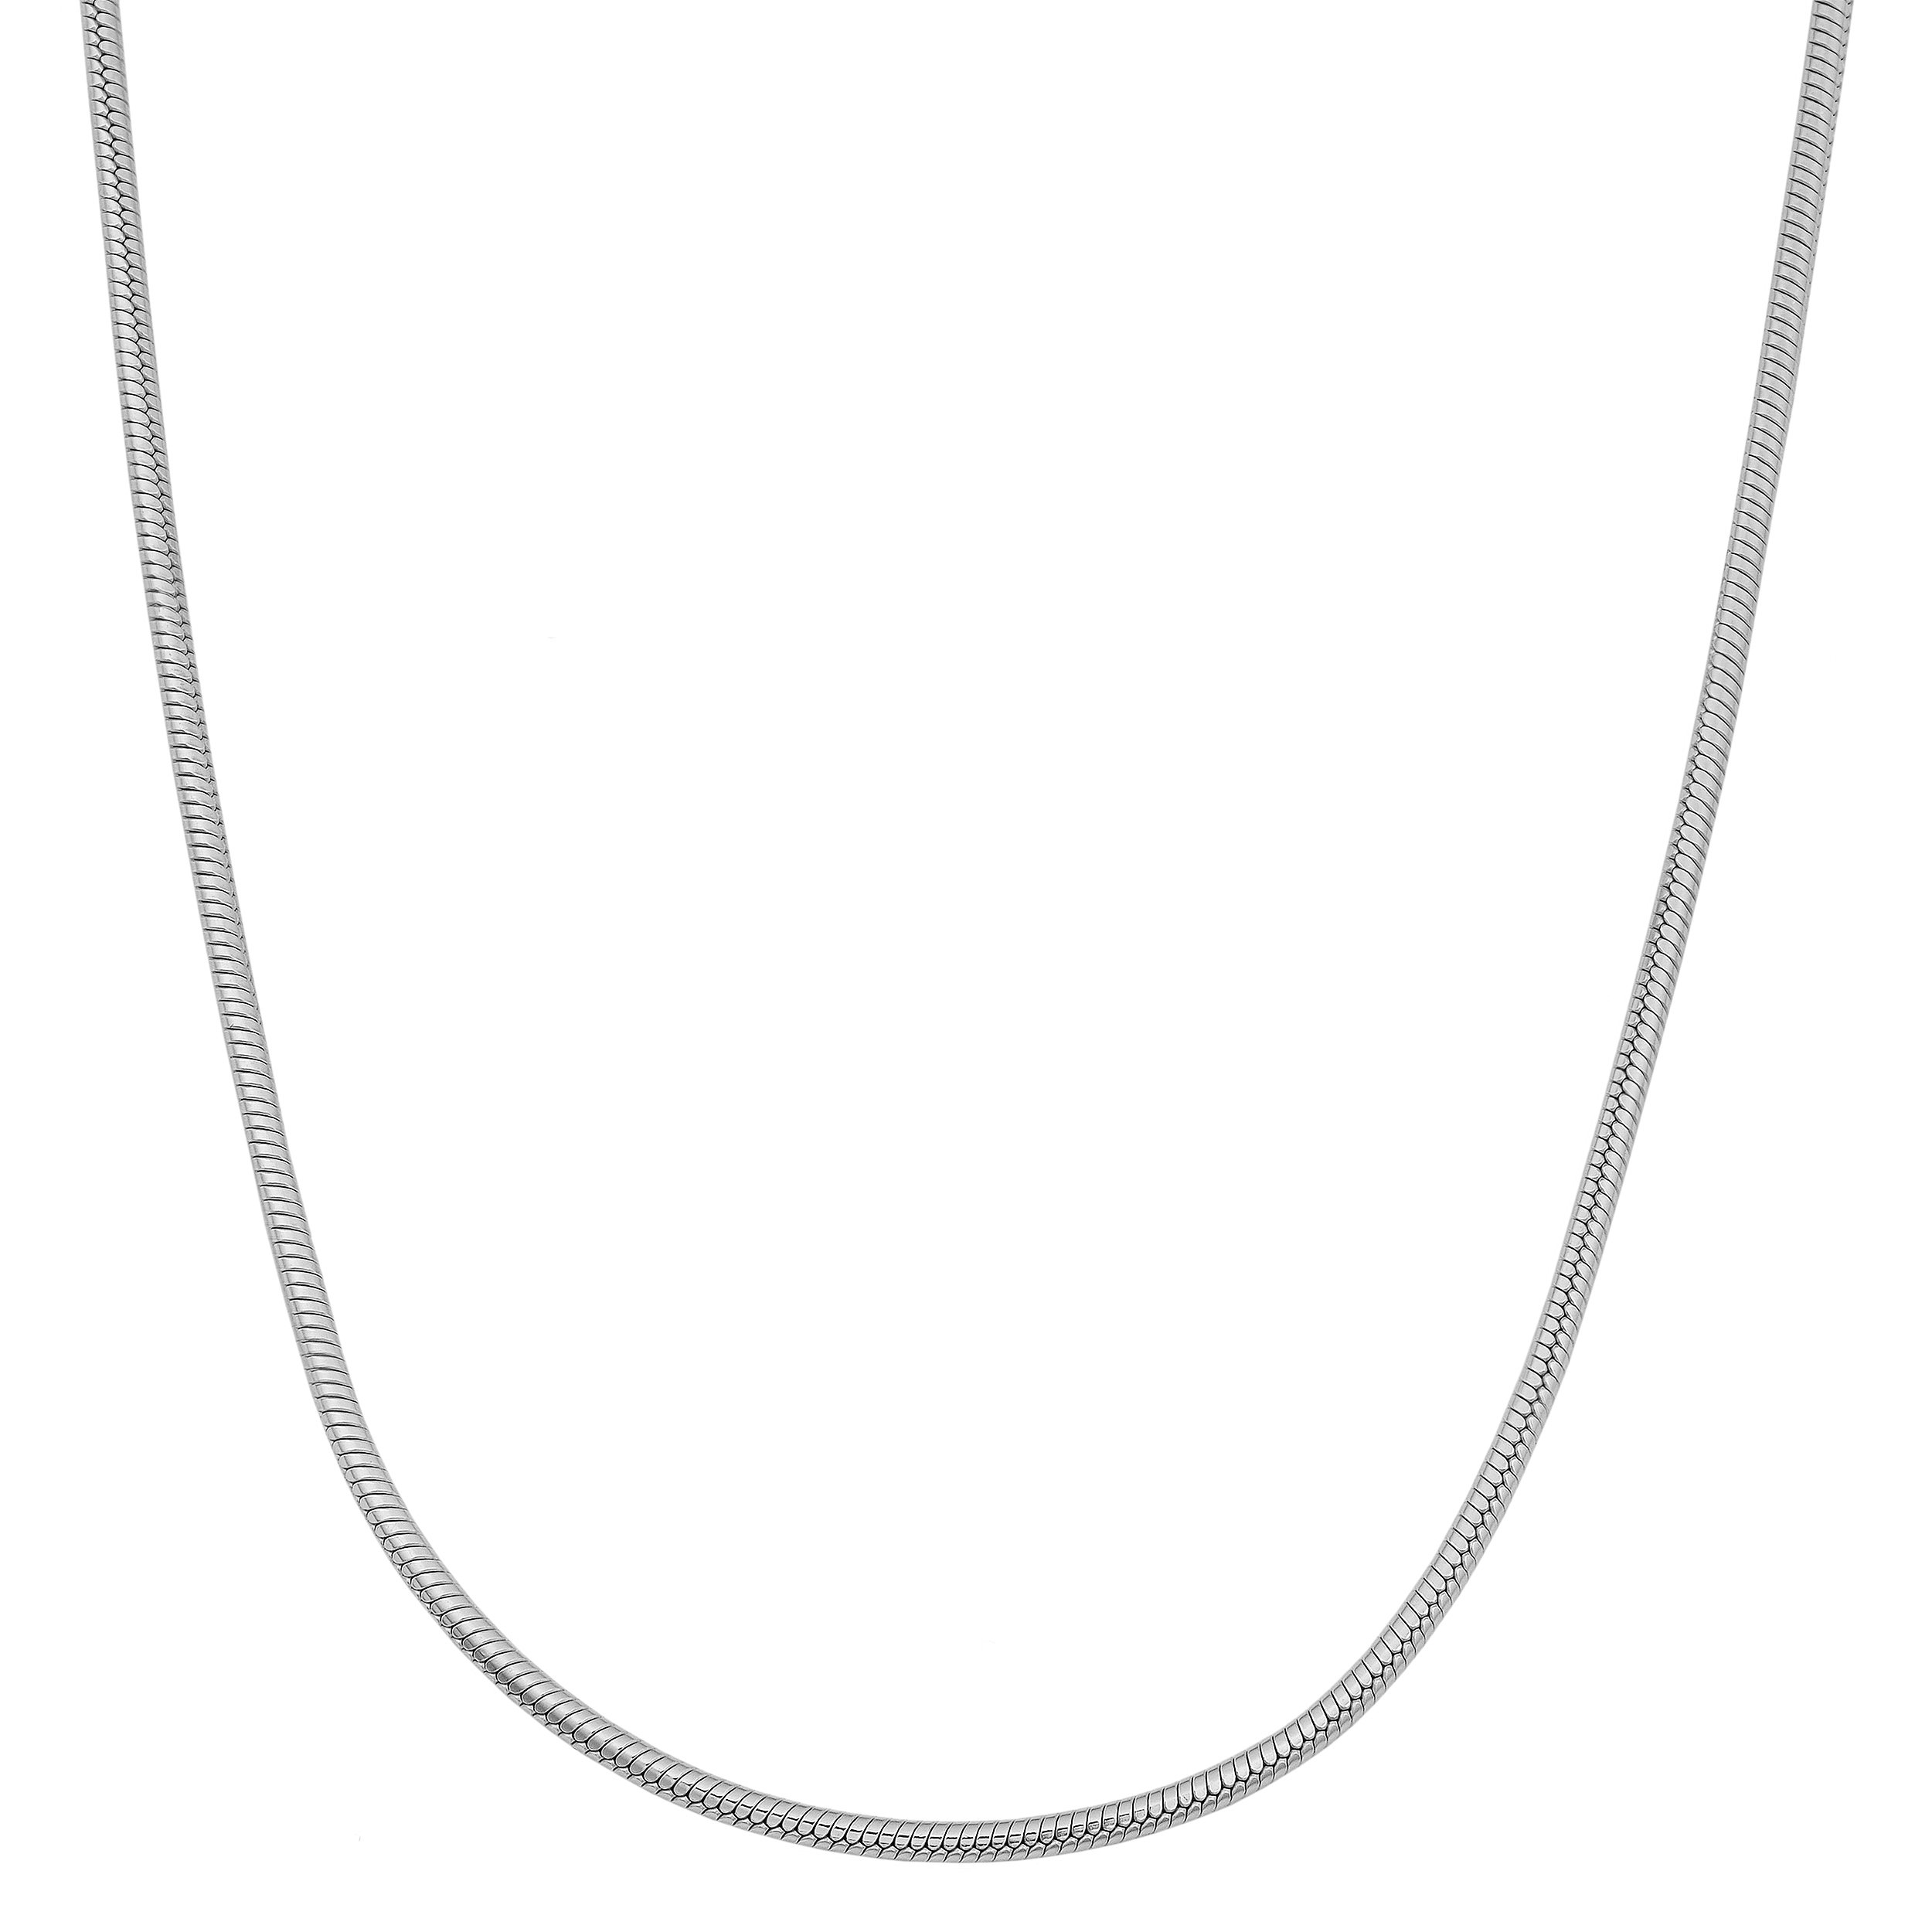 Kooljewelry Sterling Silver 1.2 mm Round Snake Chain Necklace (16, 18, 20, 22, 24 or 30 inch)